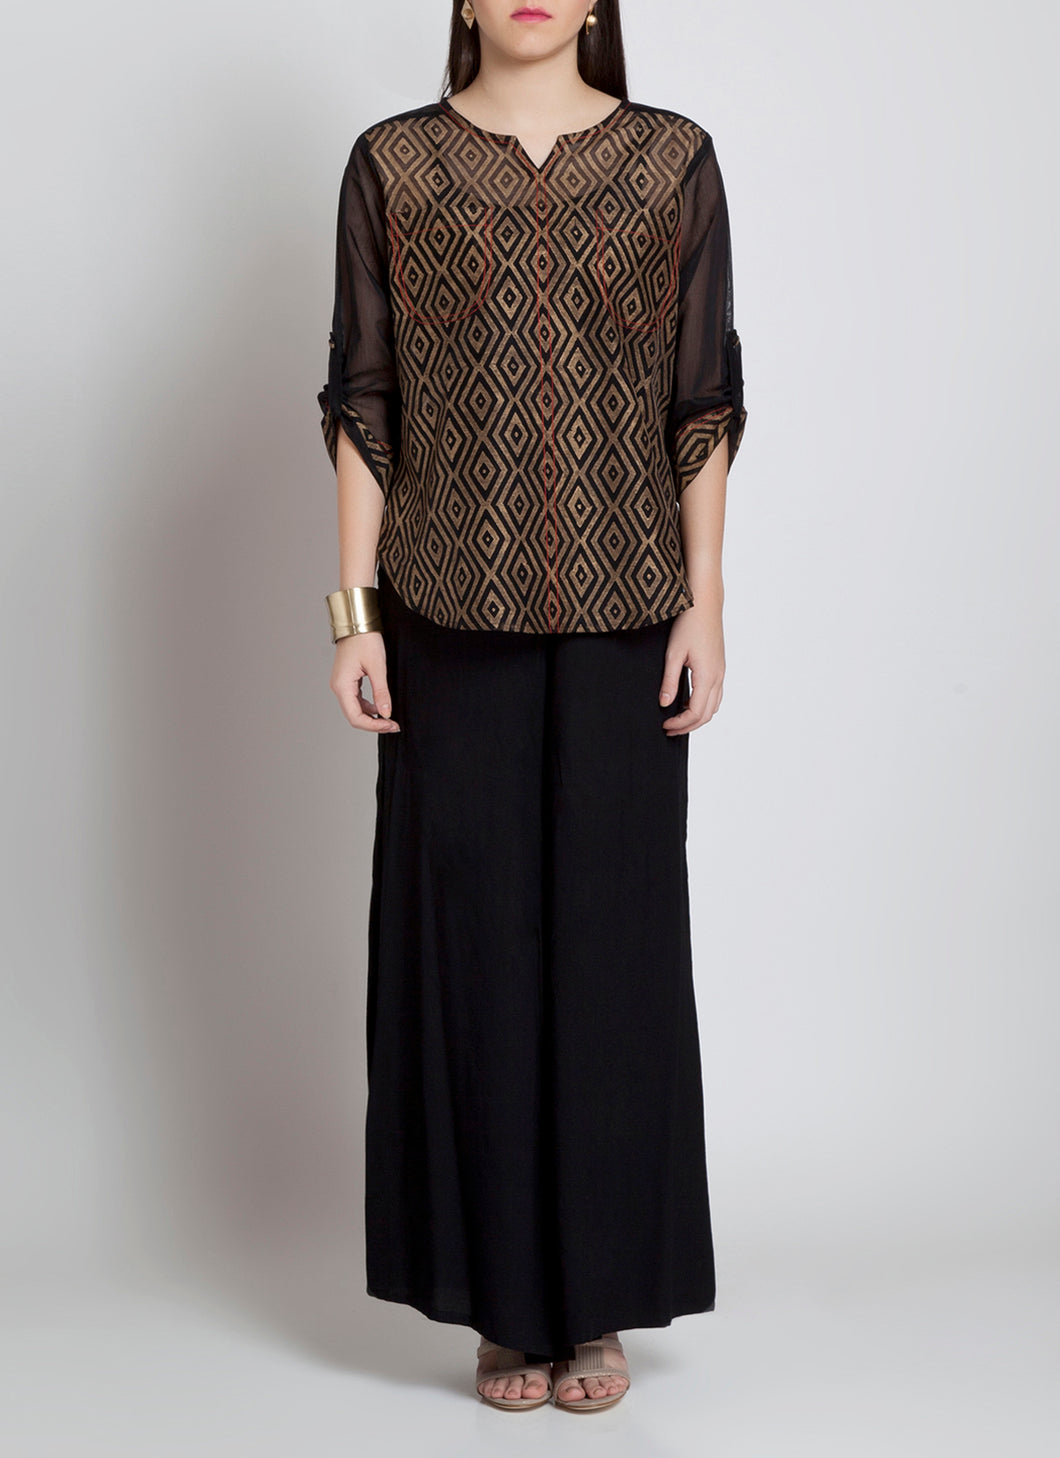 Black and gold block printed chanderi shirt apt for all occasions